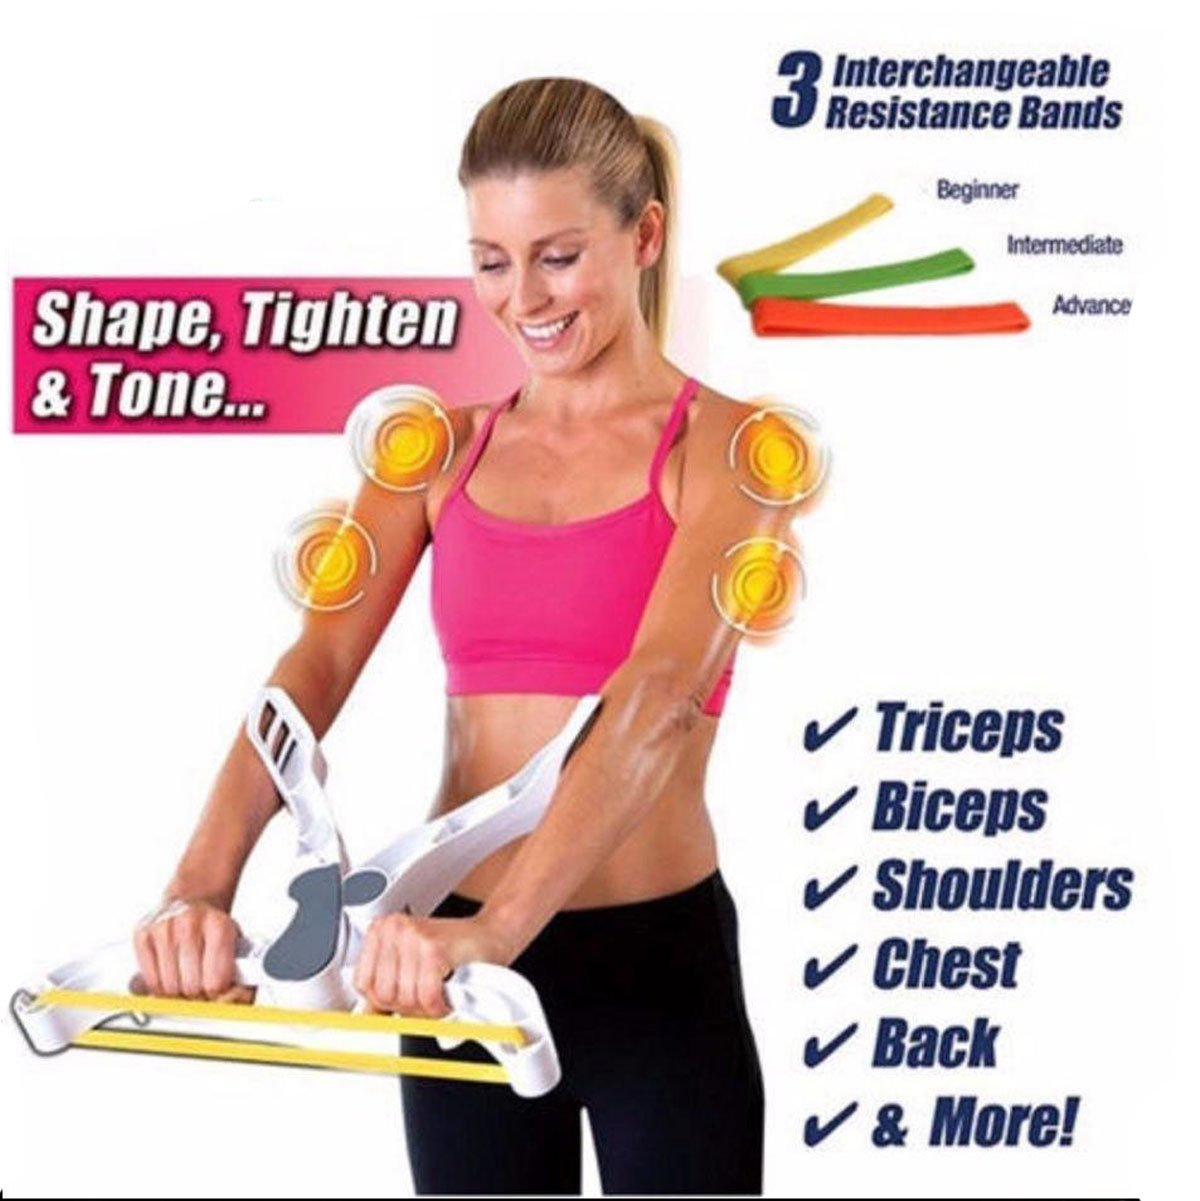 Wonder Arms - Arm Upper Body Workout Machine As Seen On TV YSAN